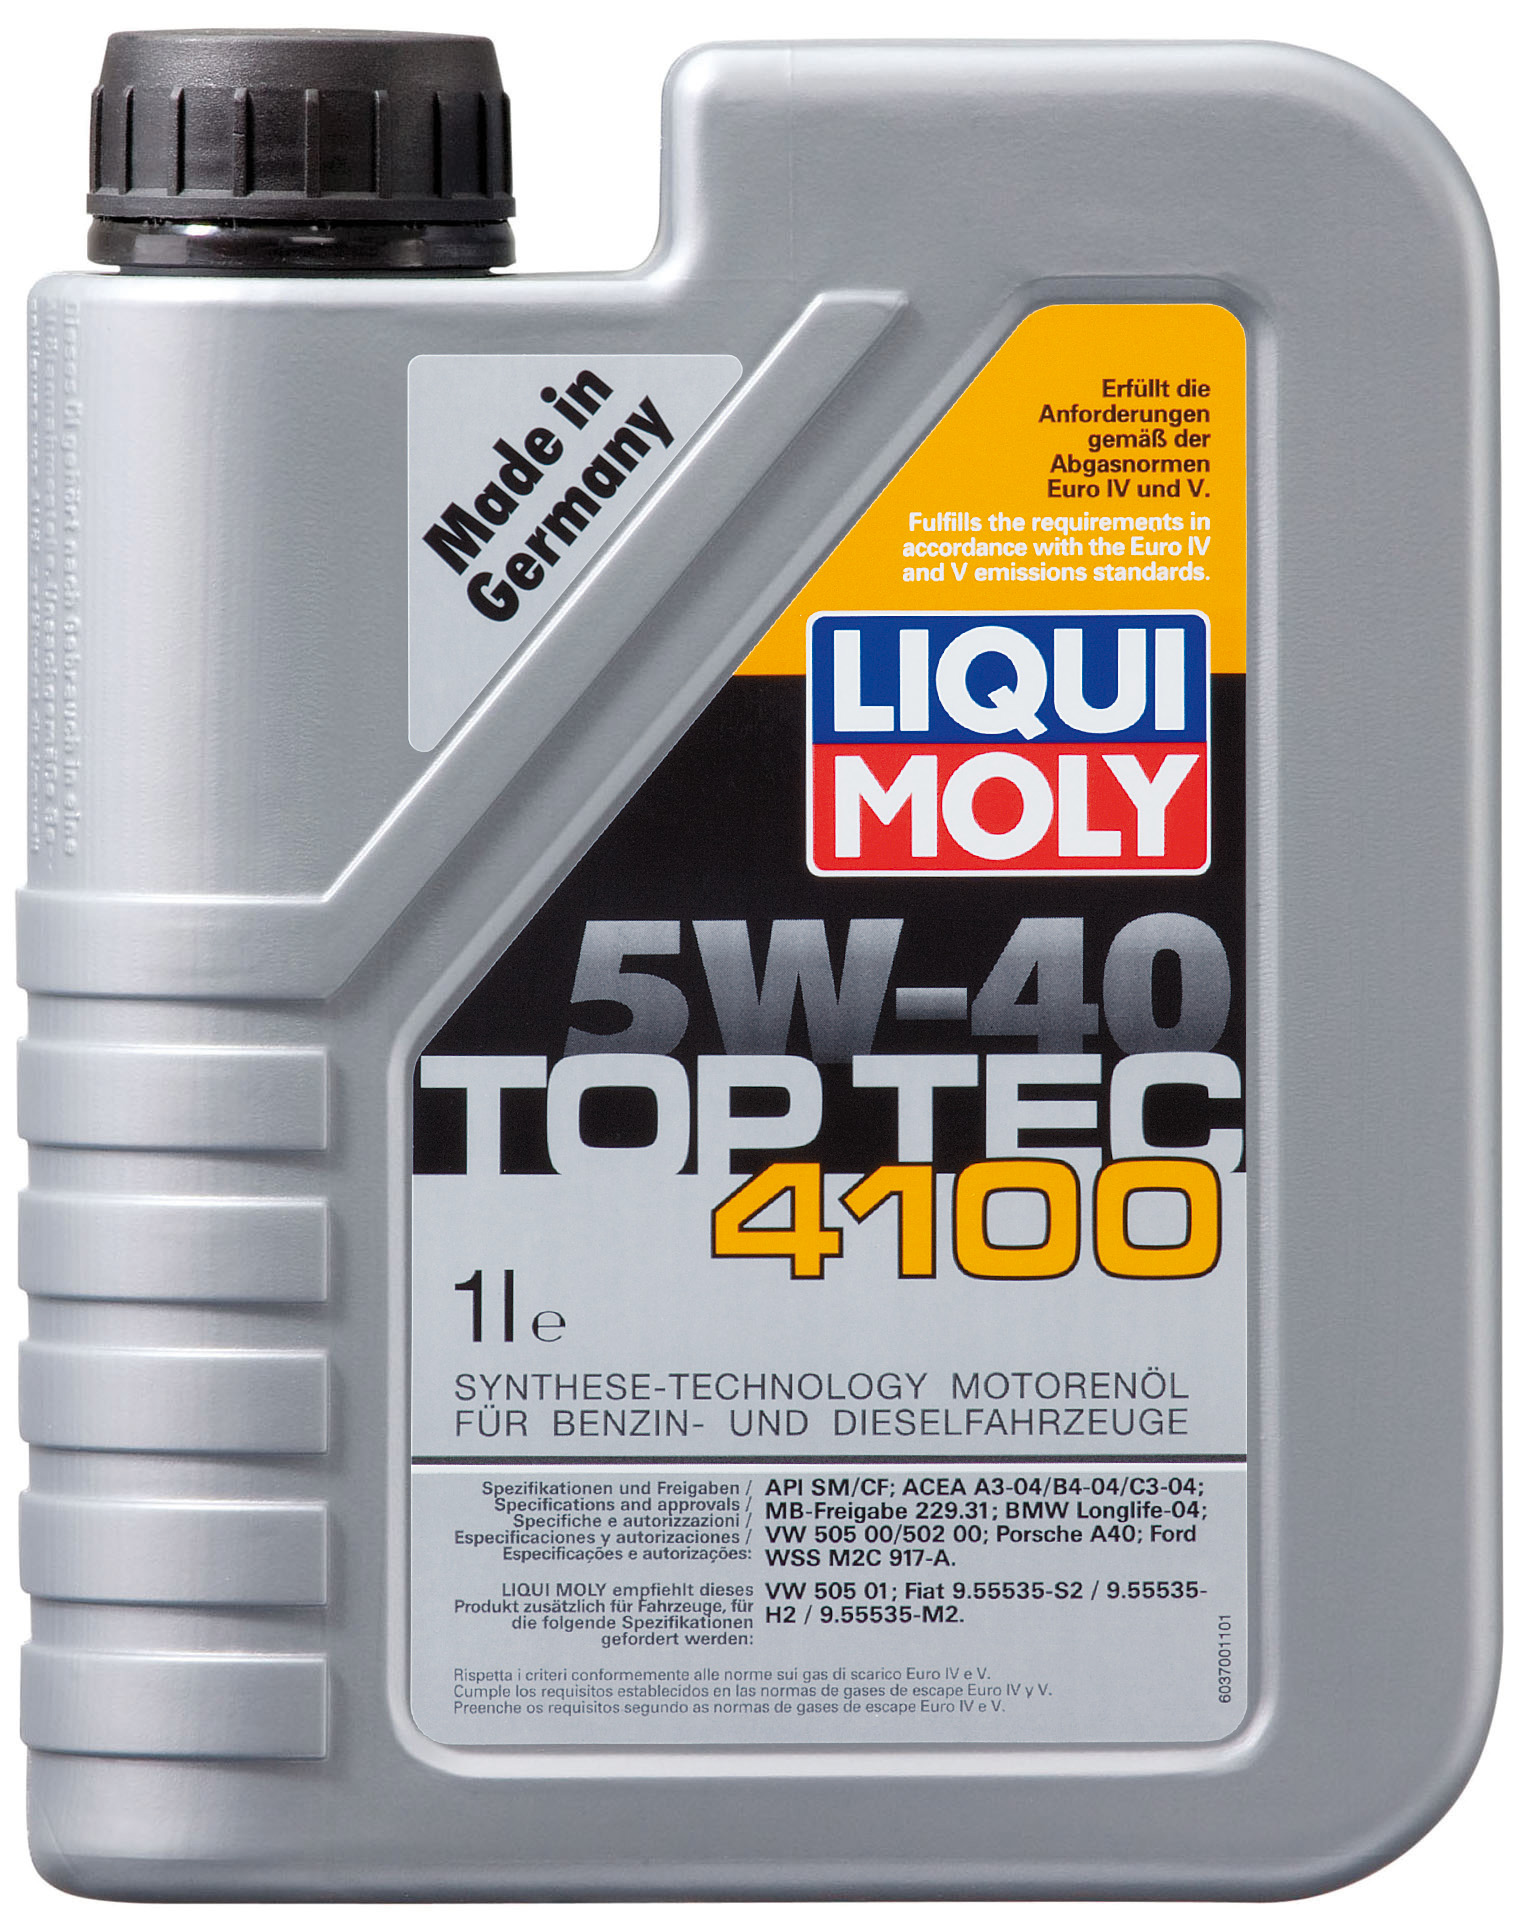 motor l top tec 4100 5 w 40 liqui moly motoroel king. Black Bedroom Furniture Sets. Home Design Ideas